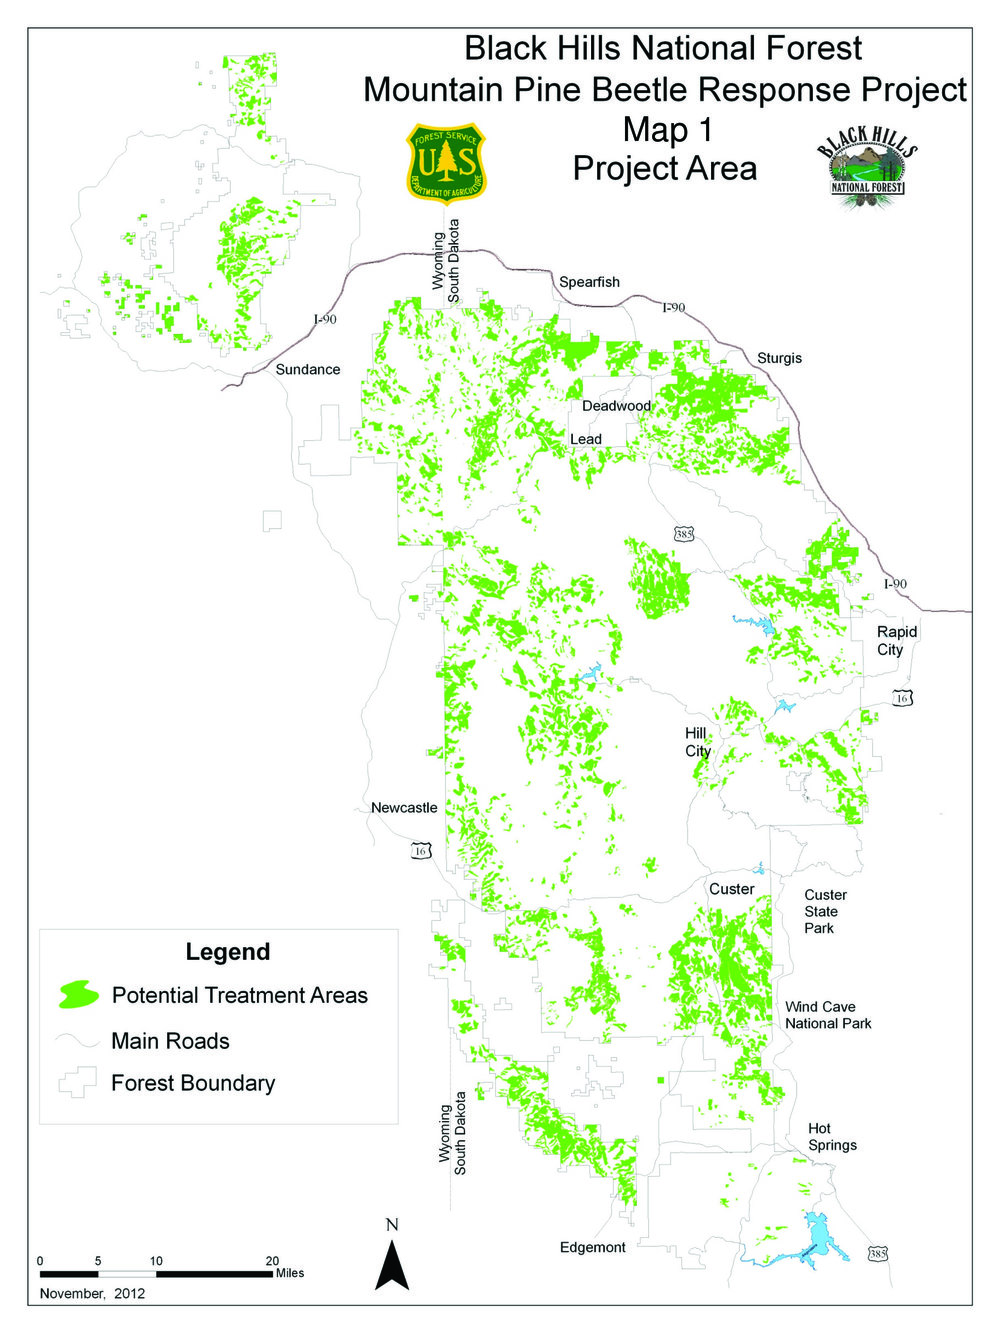 MAP: The Black Hills National Forest Mountain Beetle Response Project Map. Source: U.S. Forest Service, Black Hills National Forest.